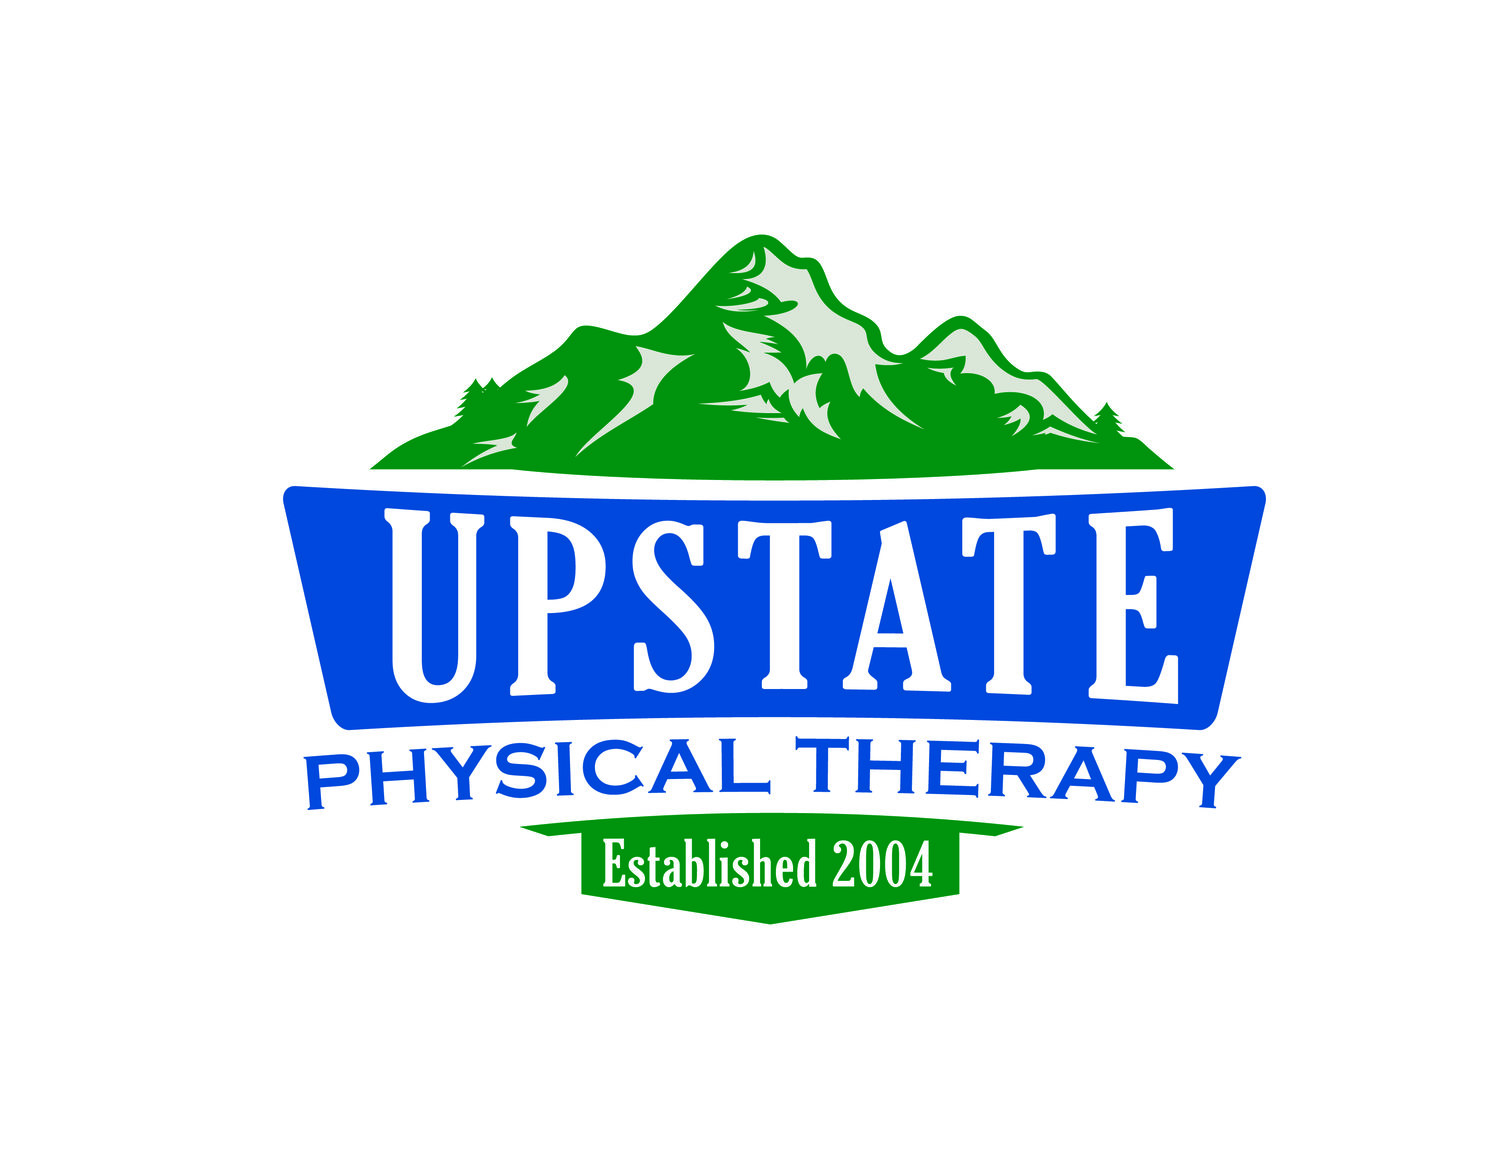 UPSTATE PHYSICAL THERAPY